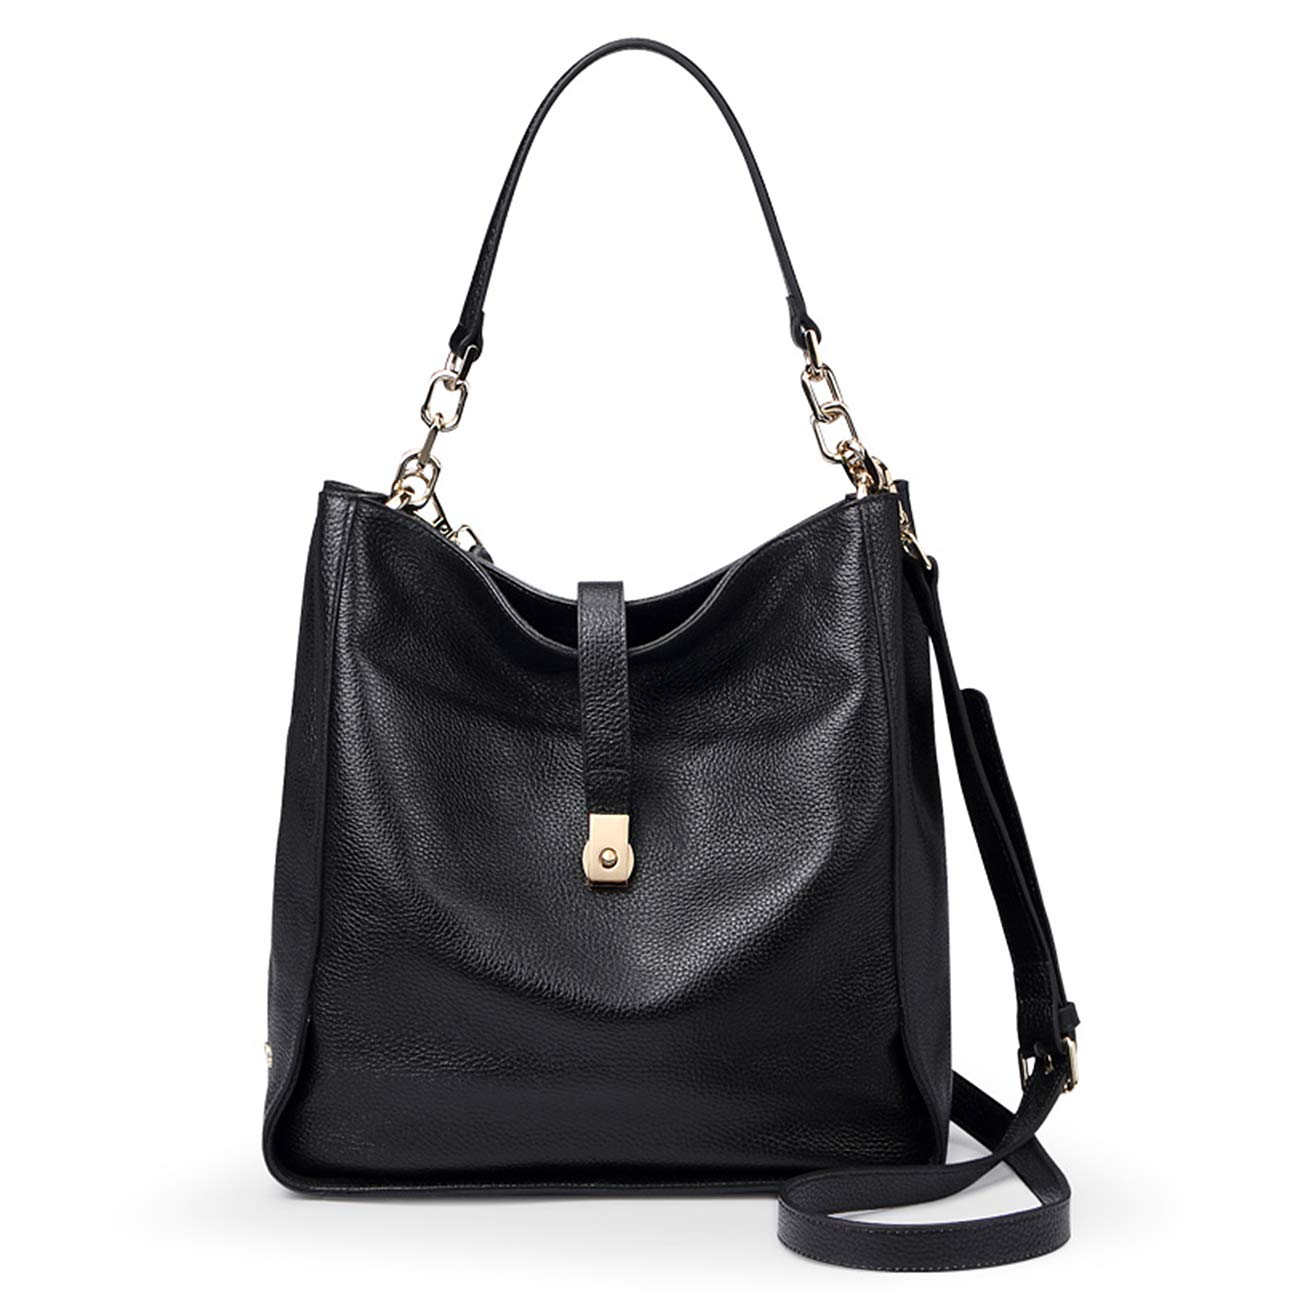 Genuine-Leather-Handbags-for-Women-Soft-Hobo-Bag-Supple-Bucket-Bag-Totes-Shoulder-Handbags